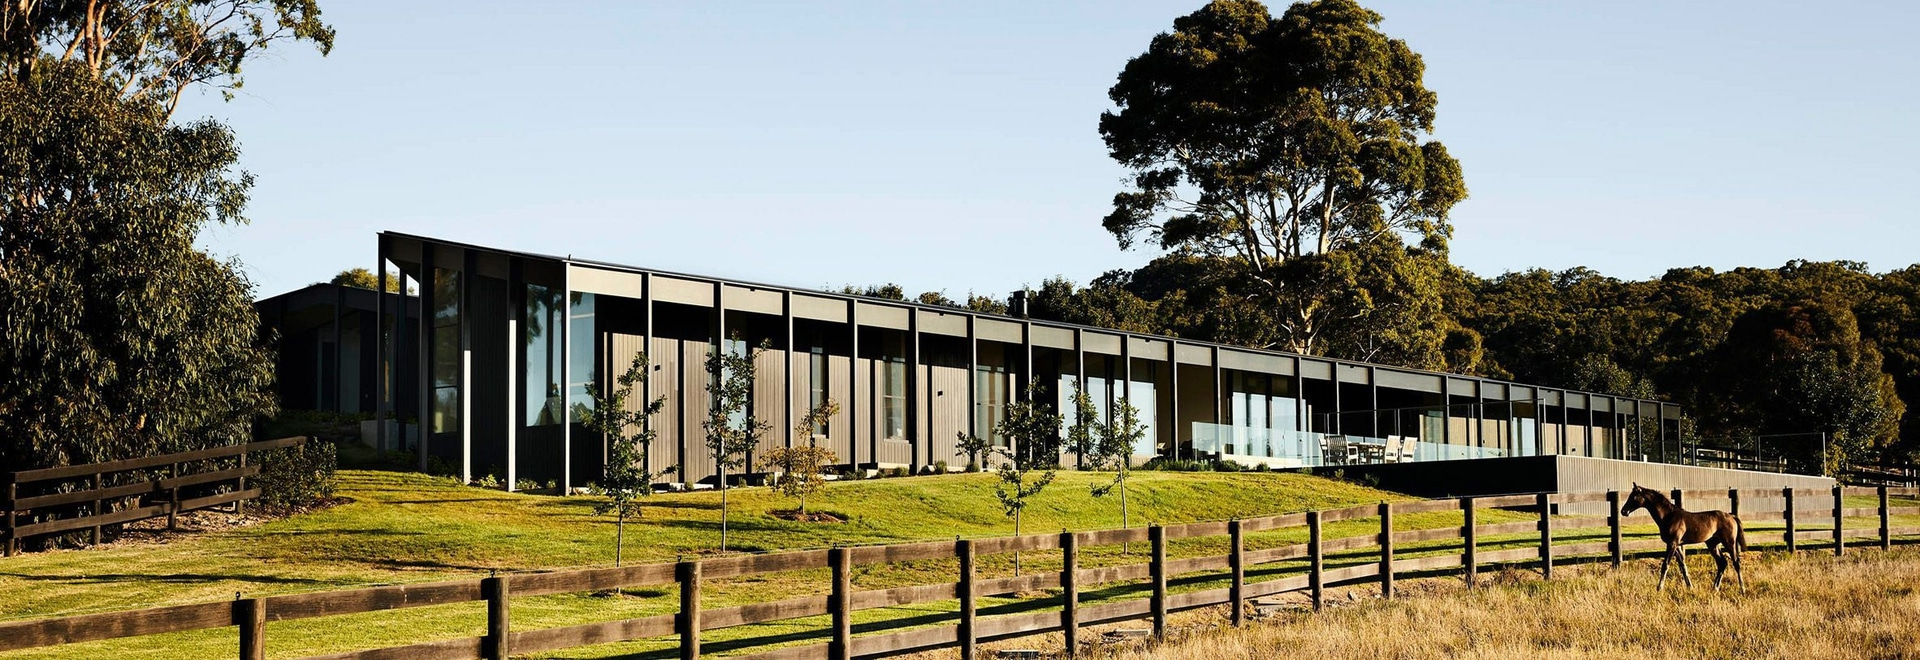 Blackened Wood Siding Covers This Modern Farm House In Rural Australia